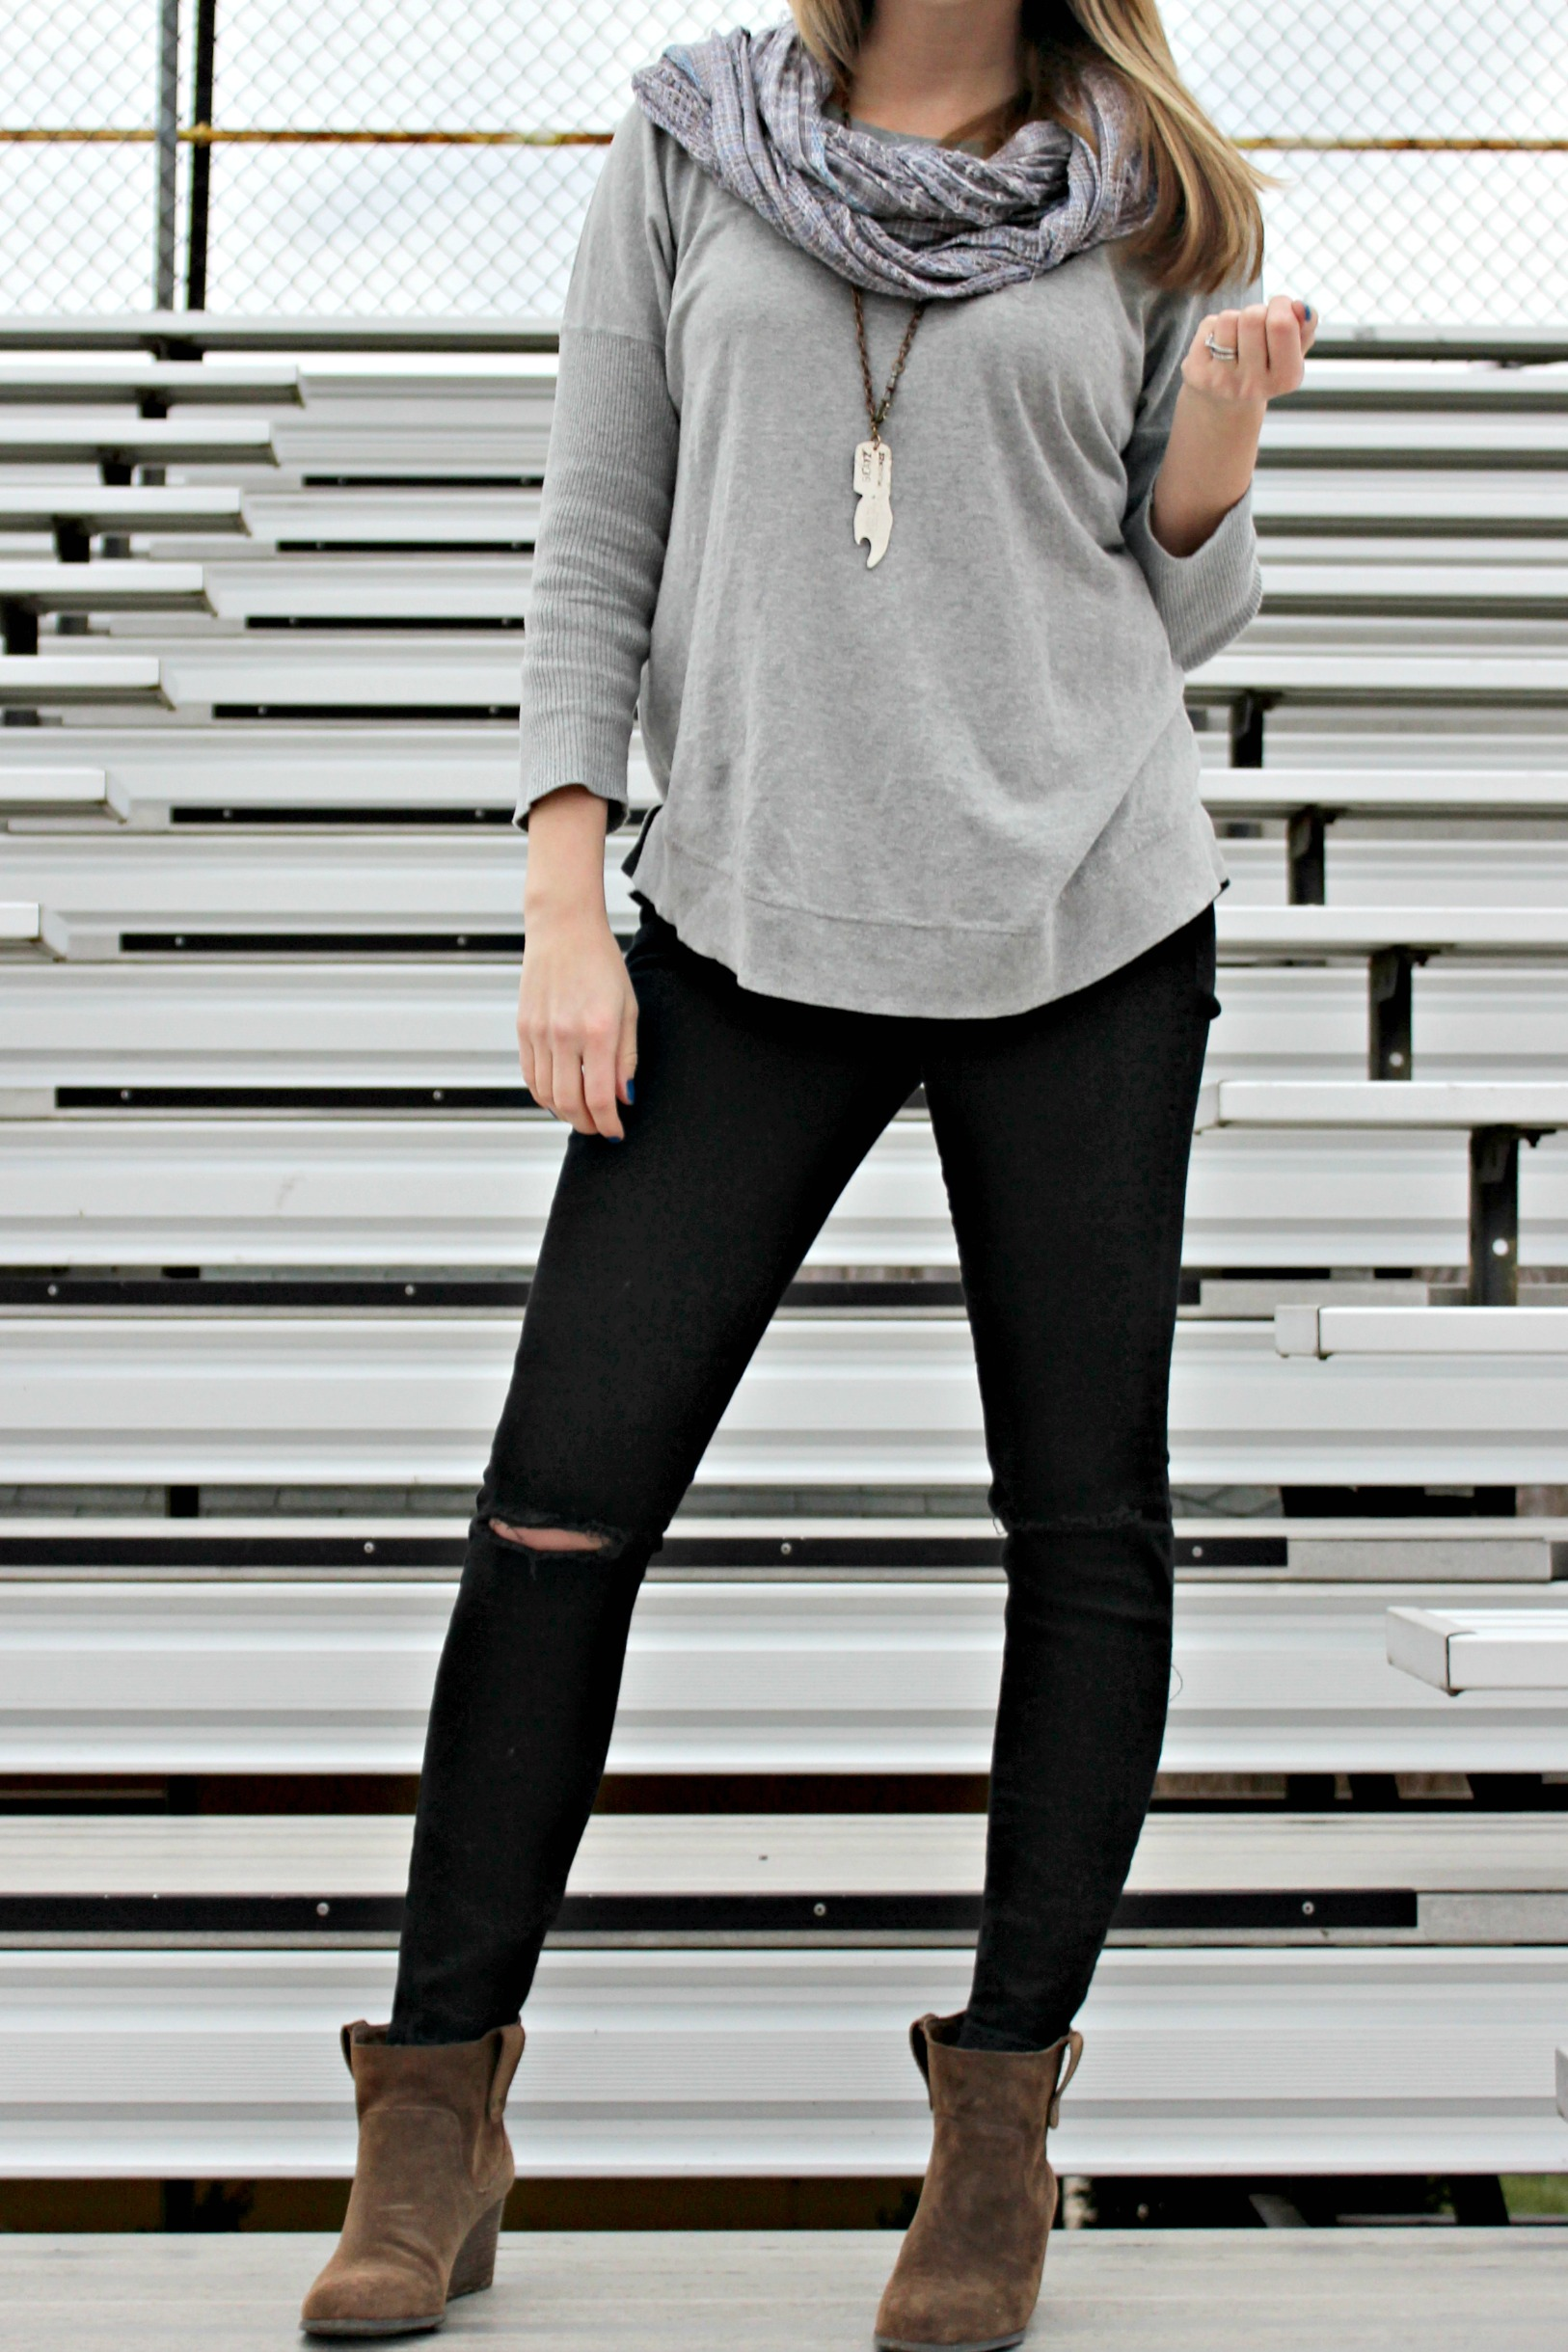 Wearing: Ripped and Cozy and Forever in Grey